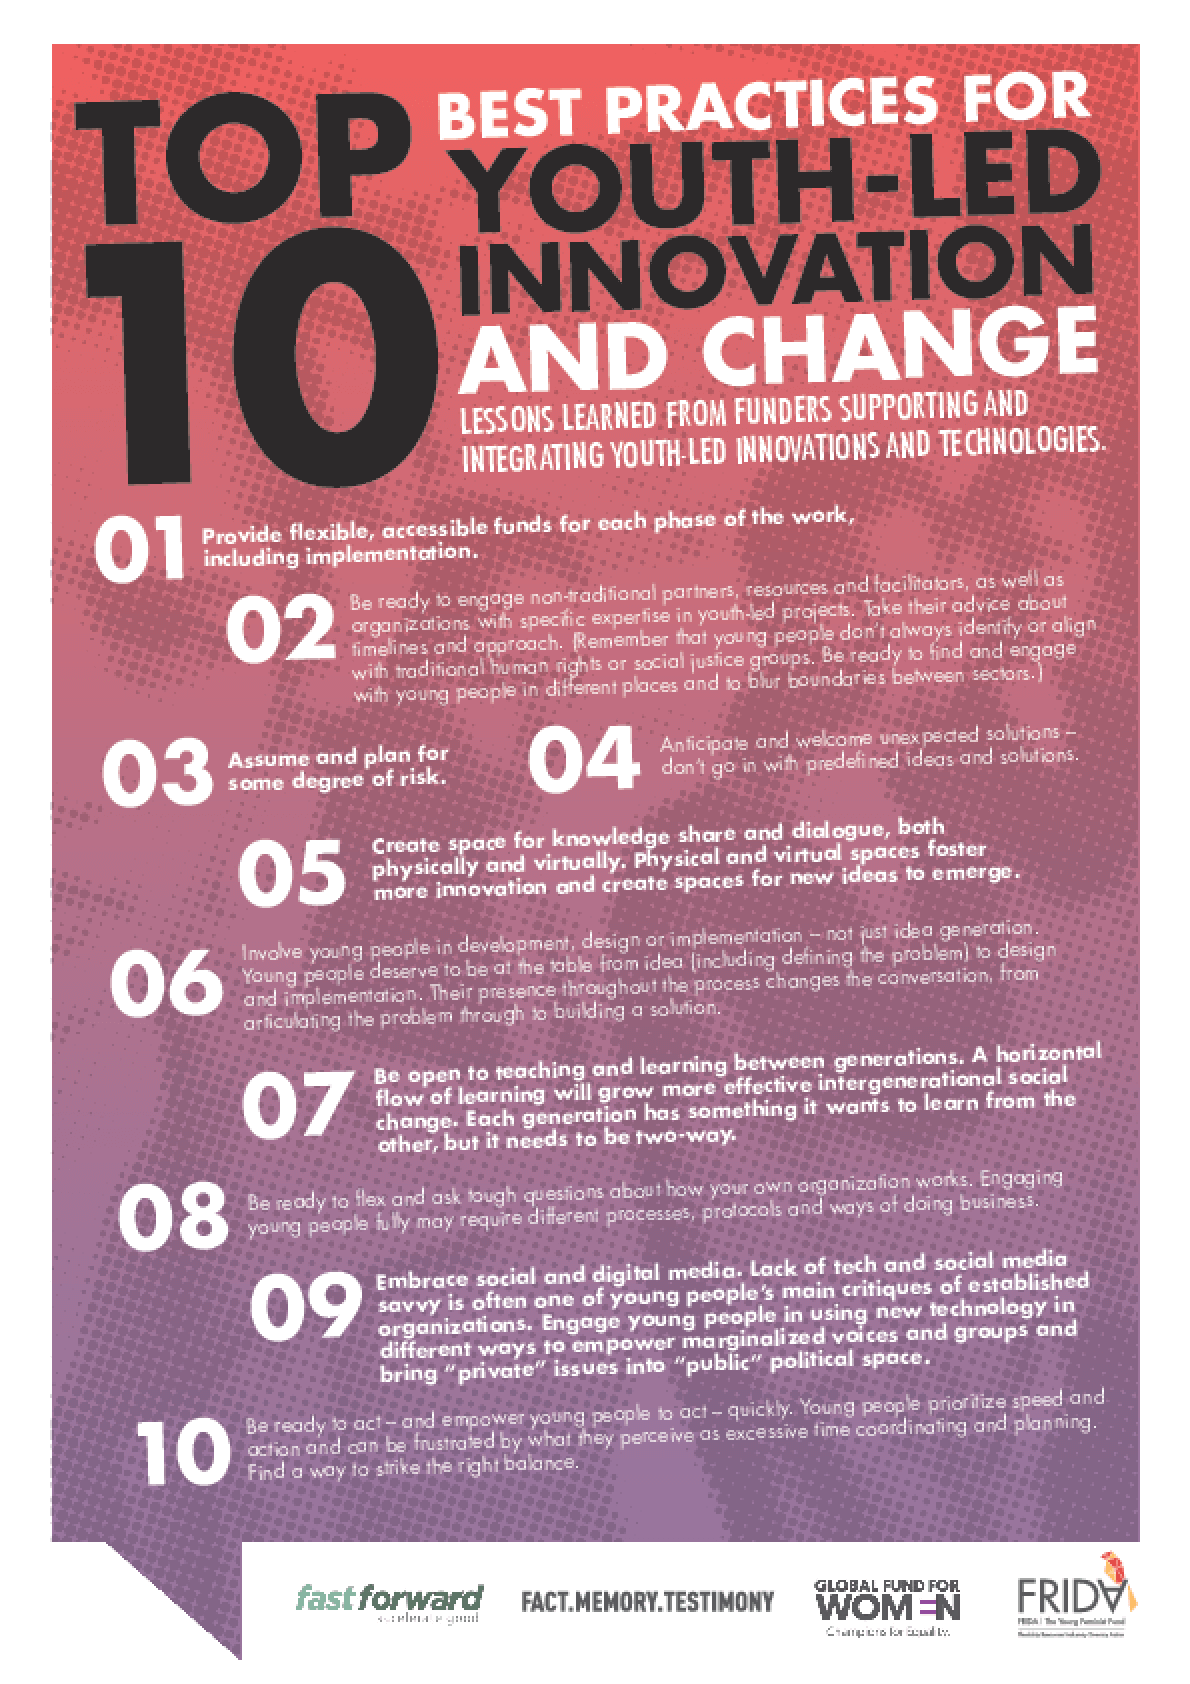 Top 10 Best Practices for Youth-Led Innovation and Change